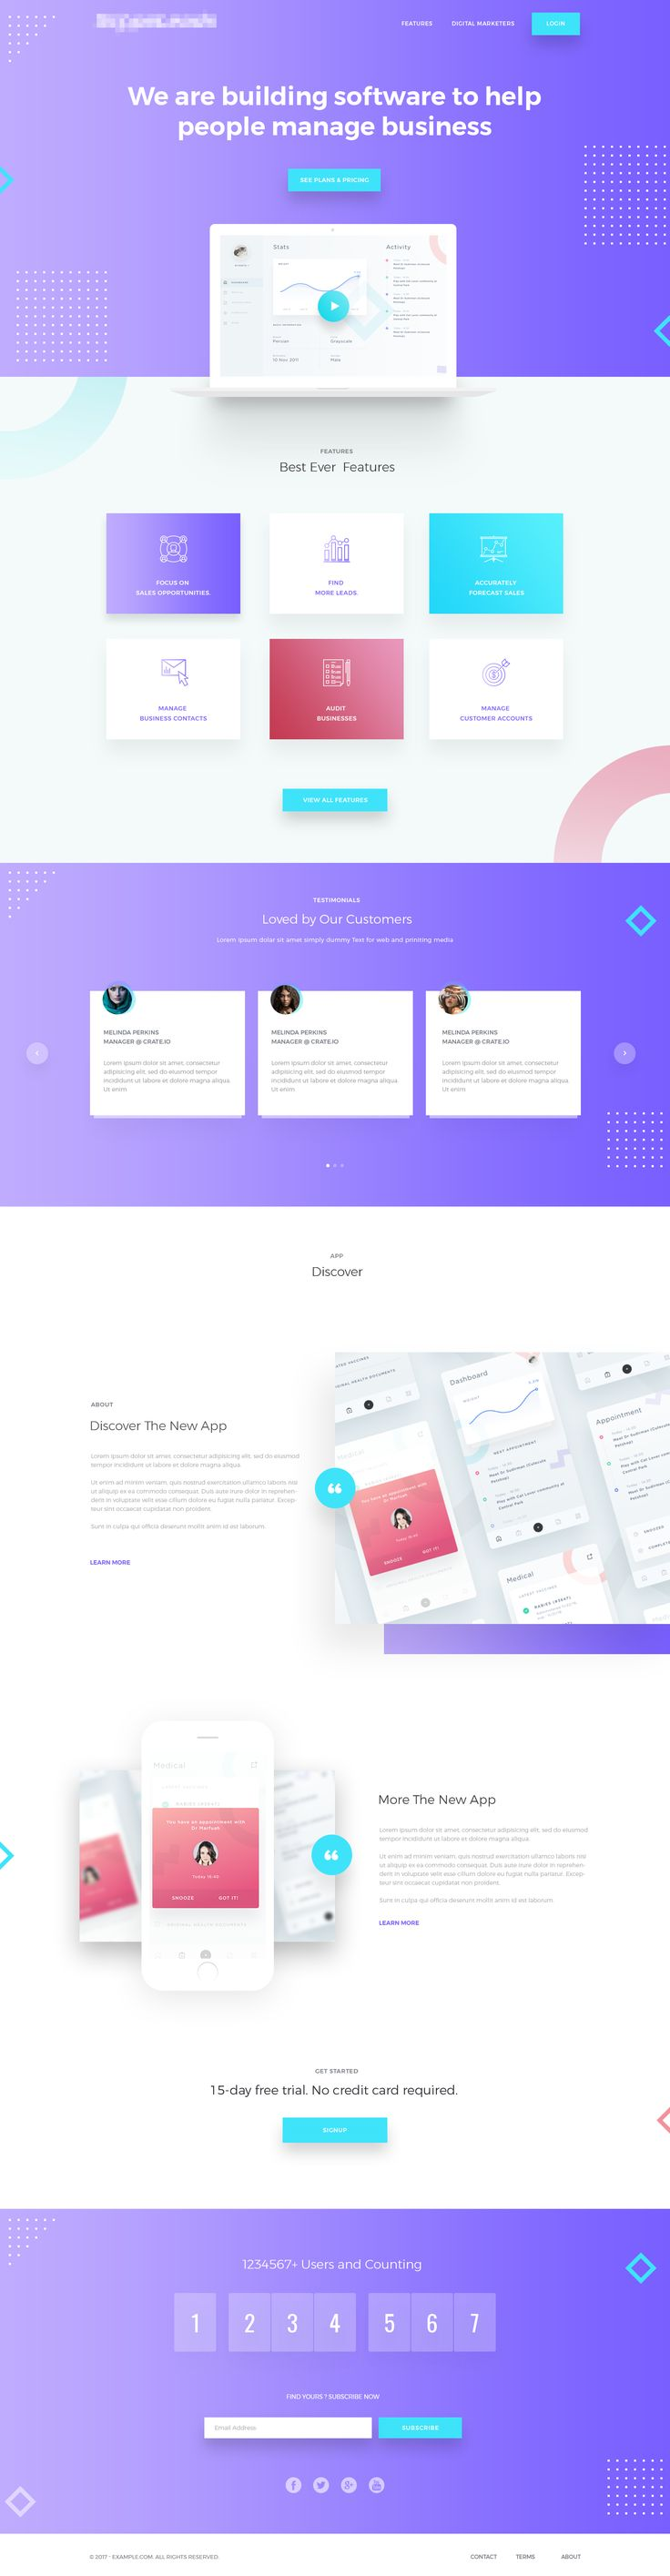 Markeitng app landing page